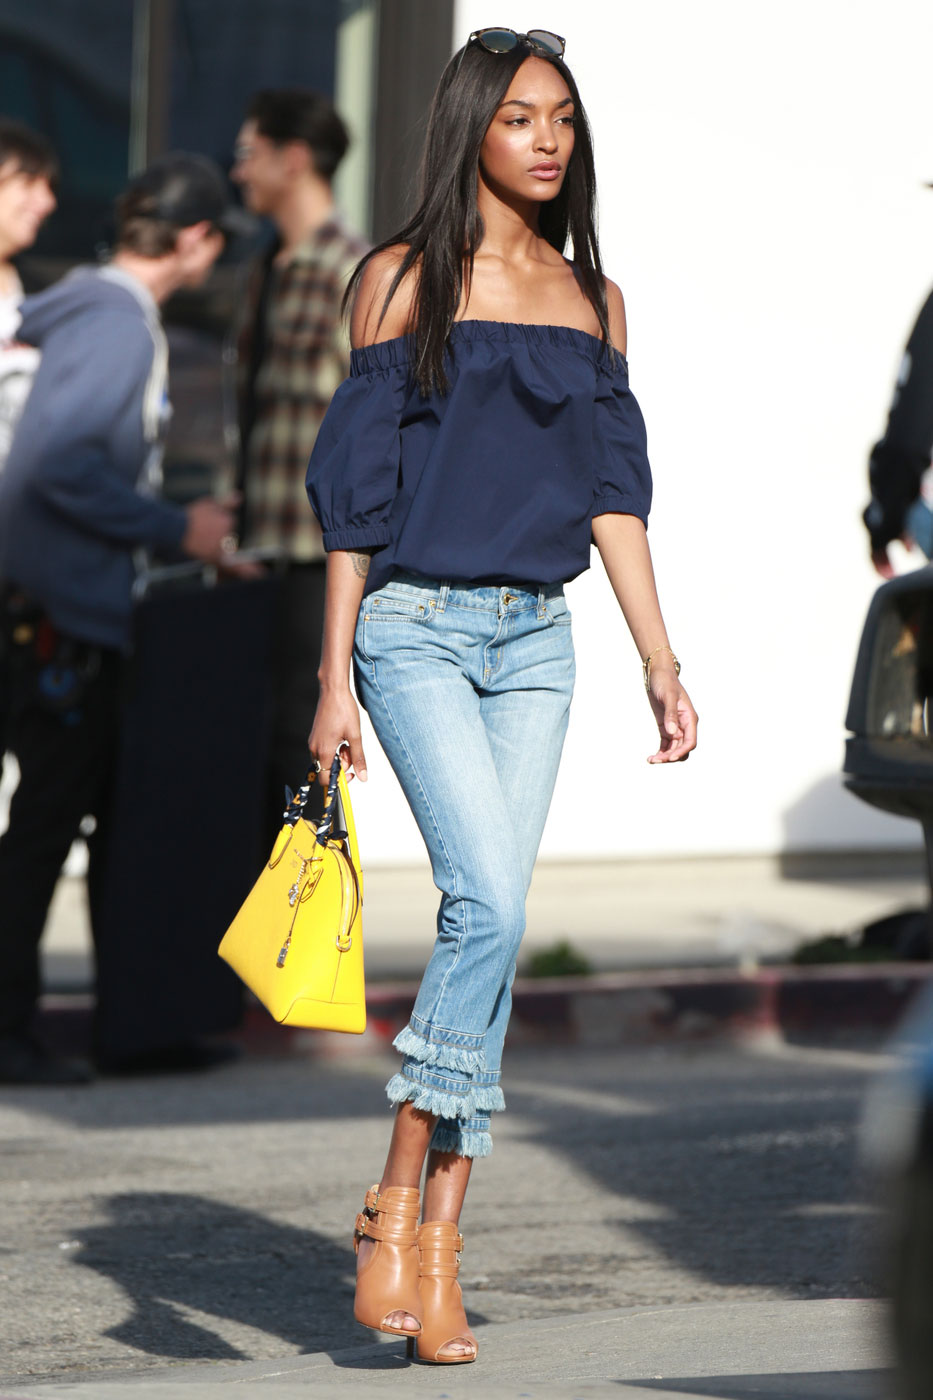 Jourdan Dunn's Off-the-Shoulder Top and Fringe Jeans Look for Less ...